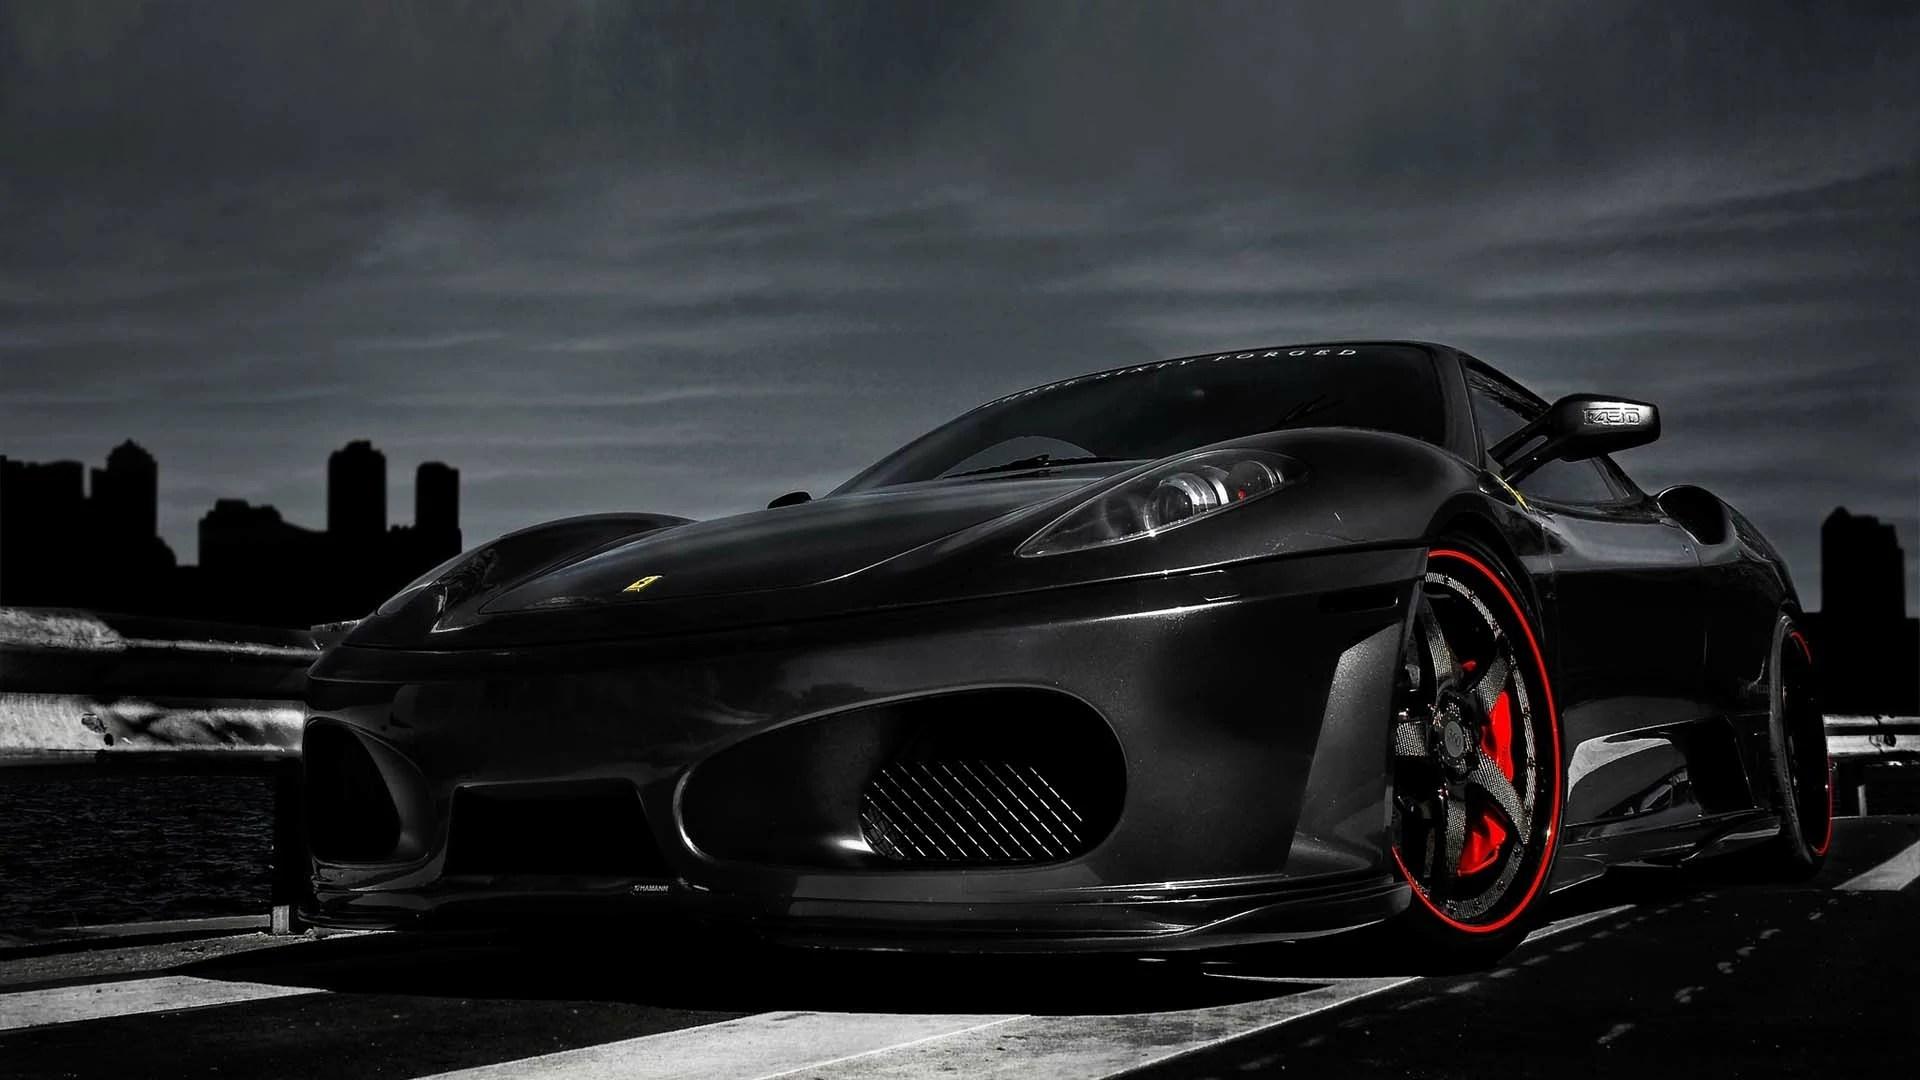 Black ferrari wallpaper